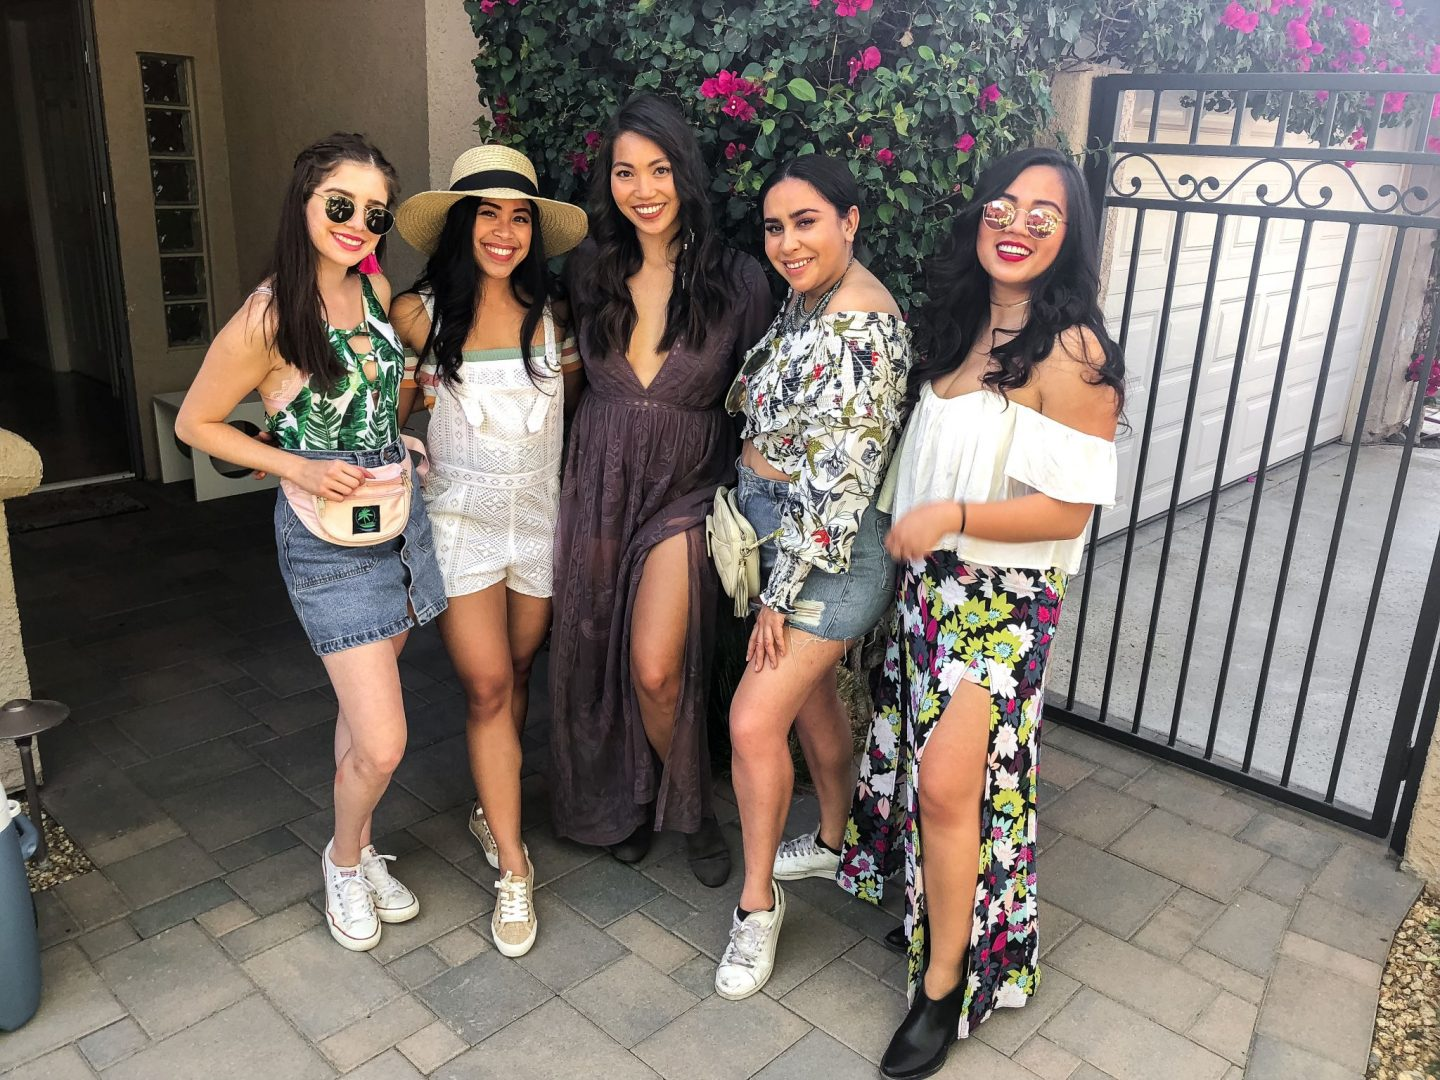 Attending Coachella for the First Time – survive your first time at Coachella – first timer's guide to Coachella – Coachella survival guide - music festival tips and tricks - Emma's Edition – Seattle Blogger